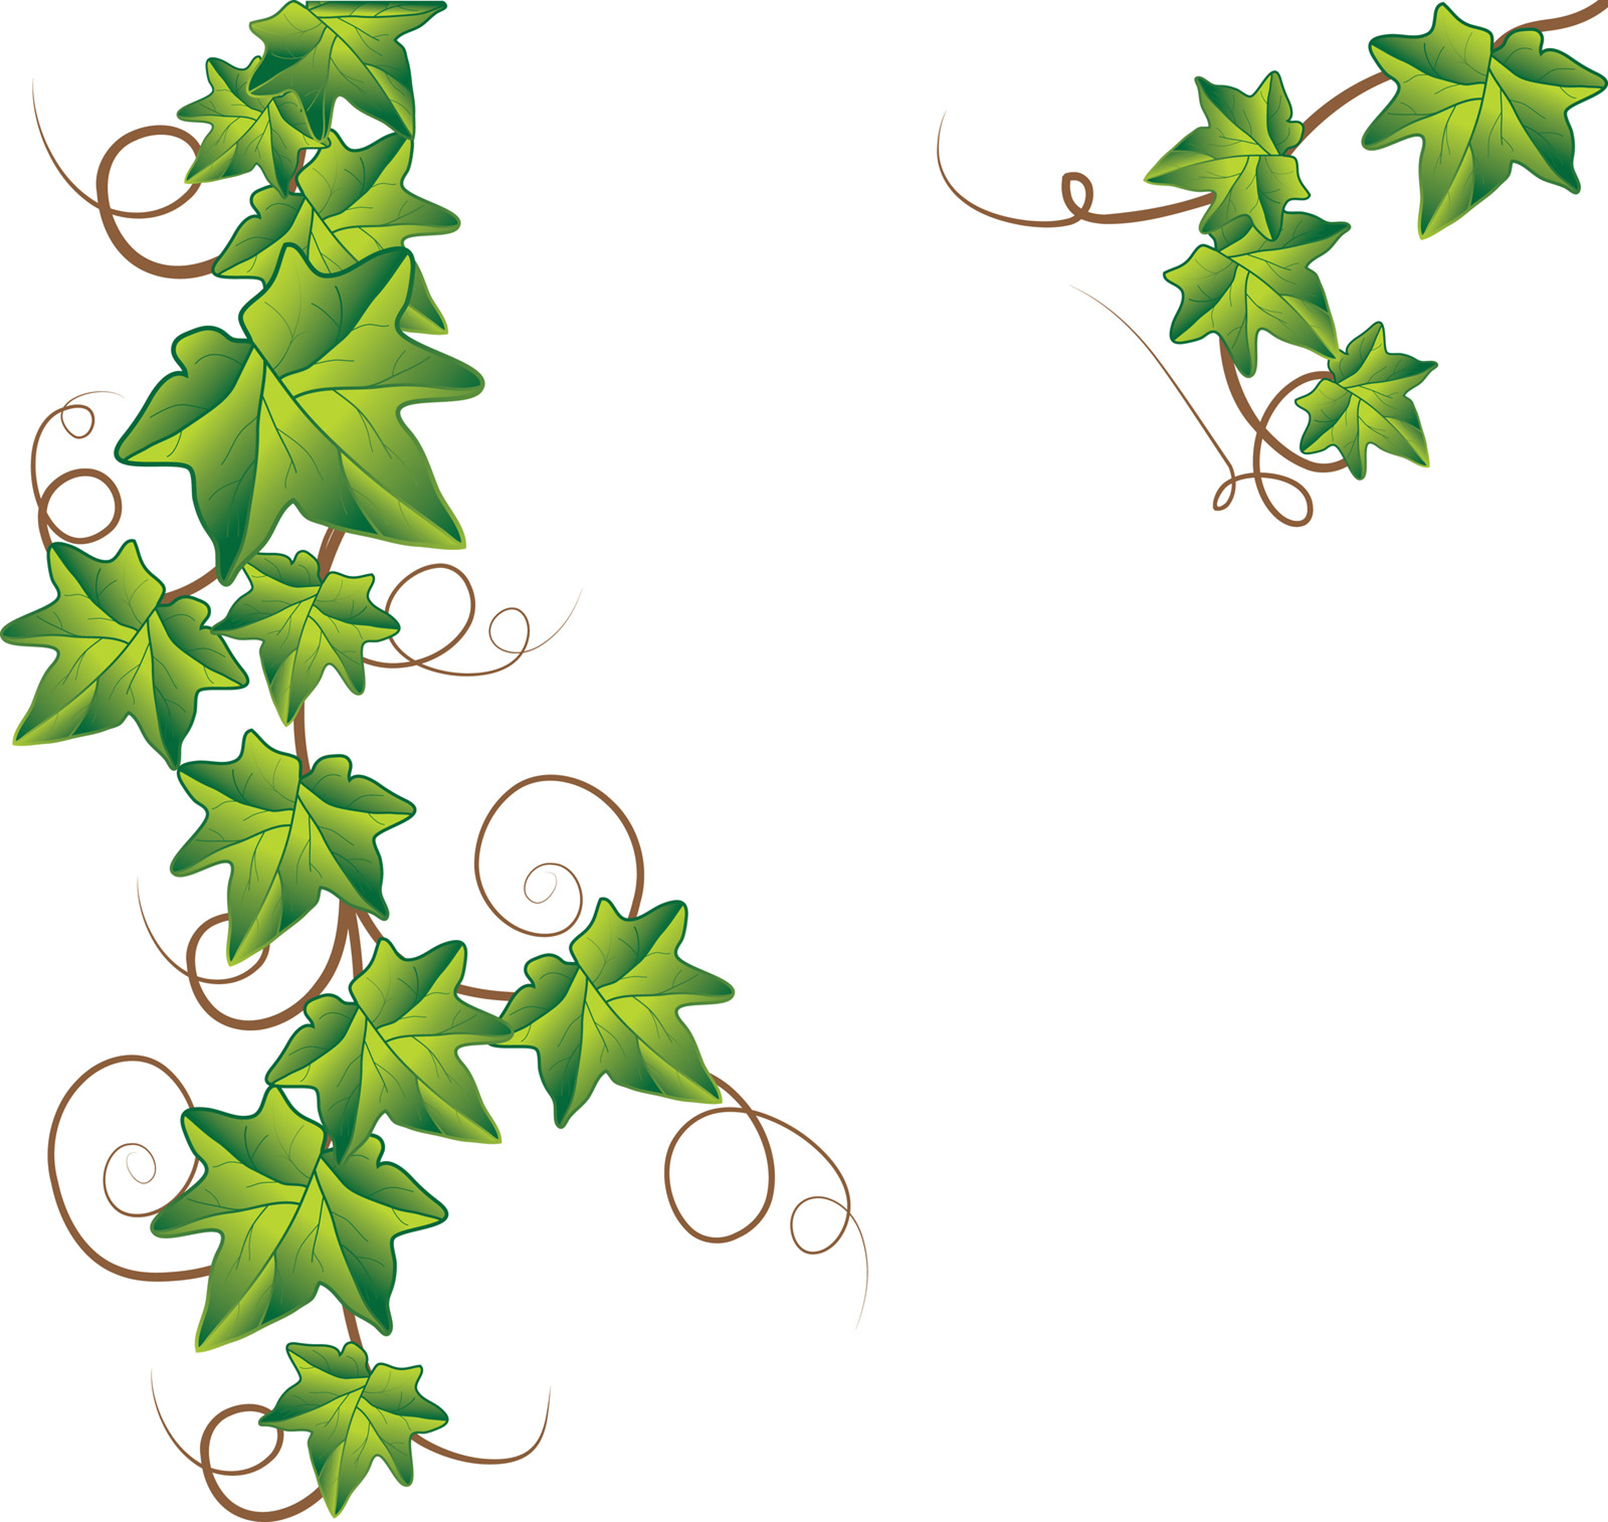 Vine tattoo designs image. Ivy clipart